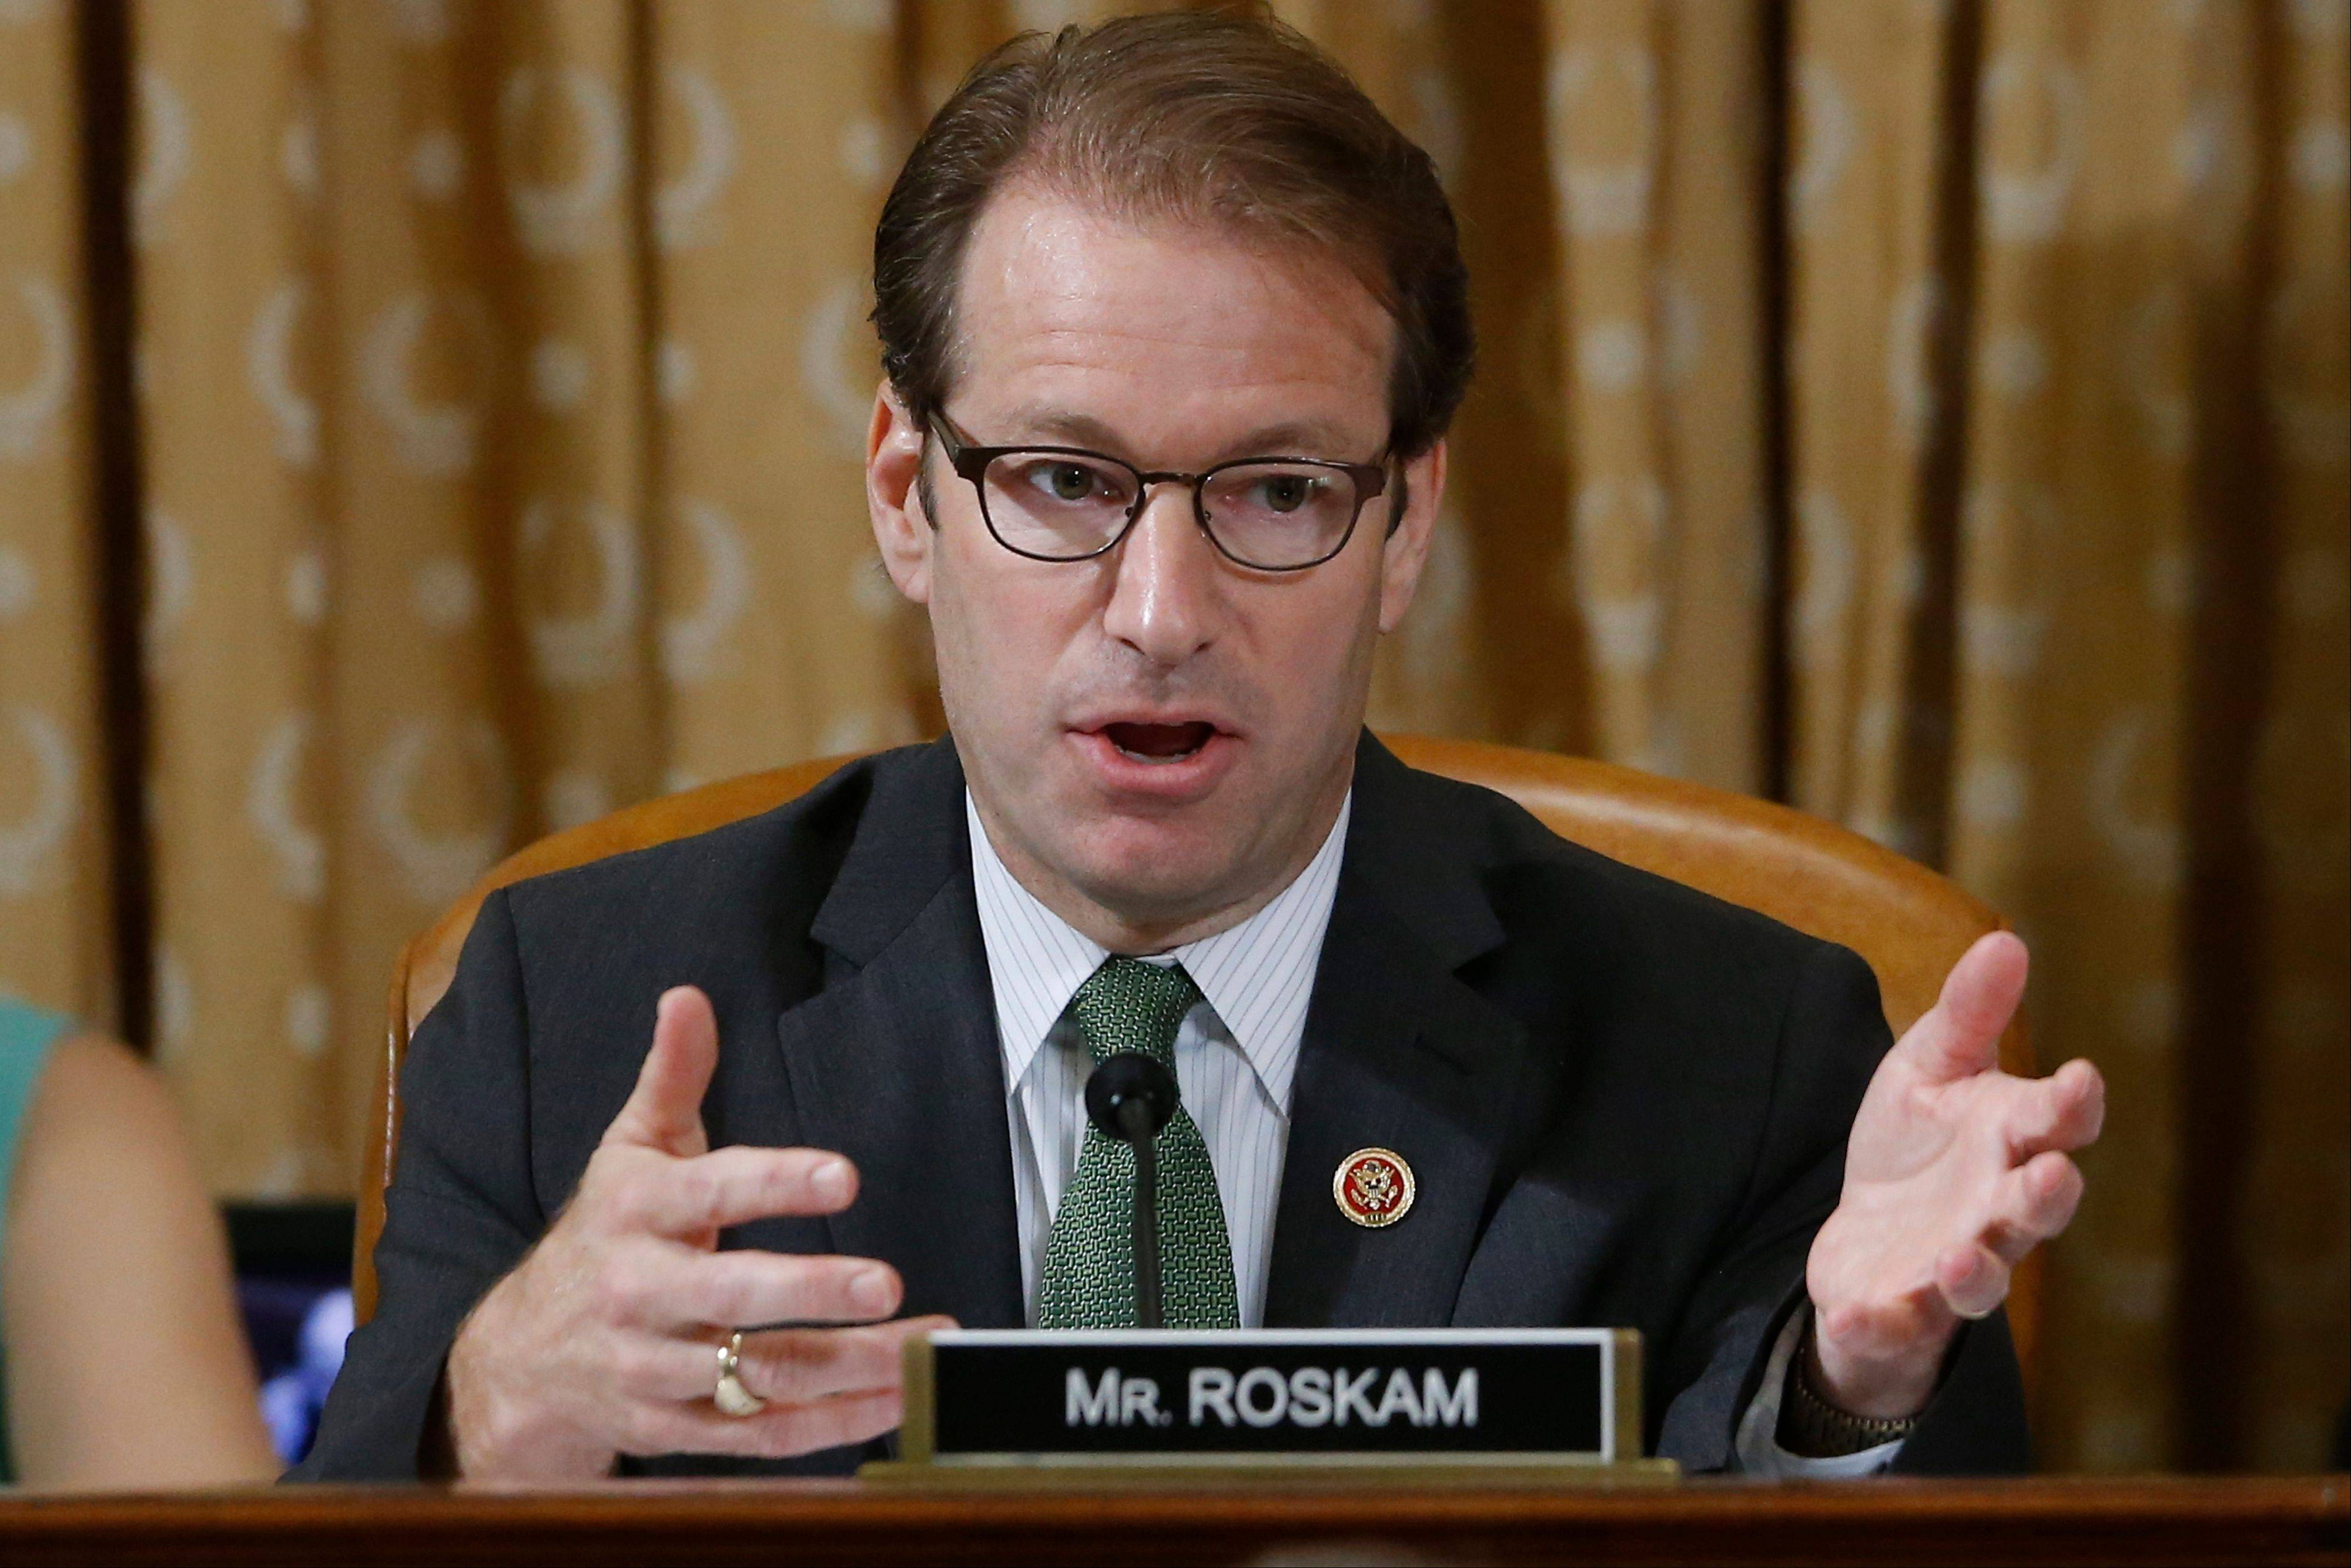 Roskam expects to be cleared by ethics commission